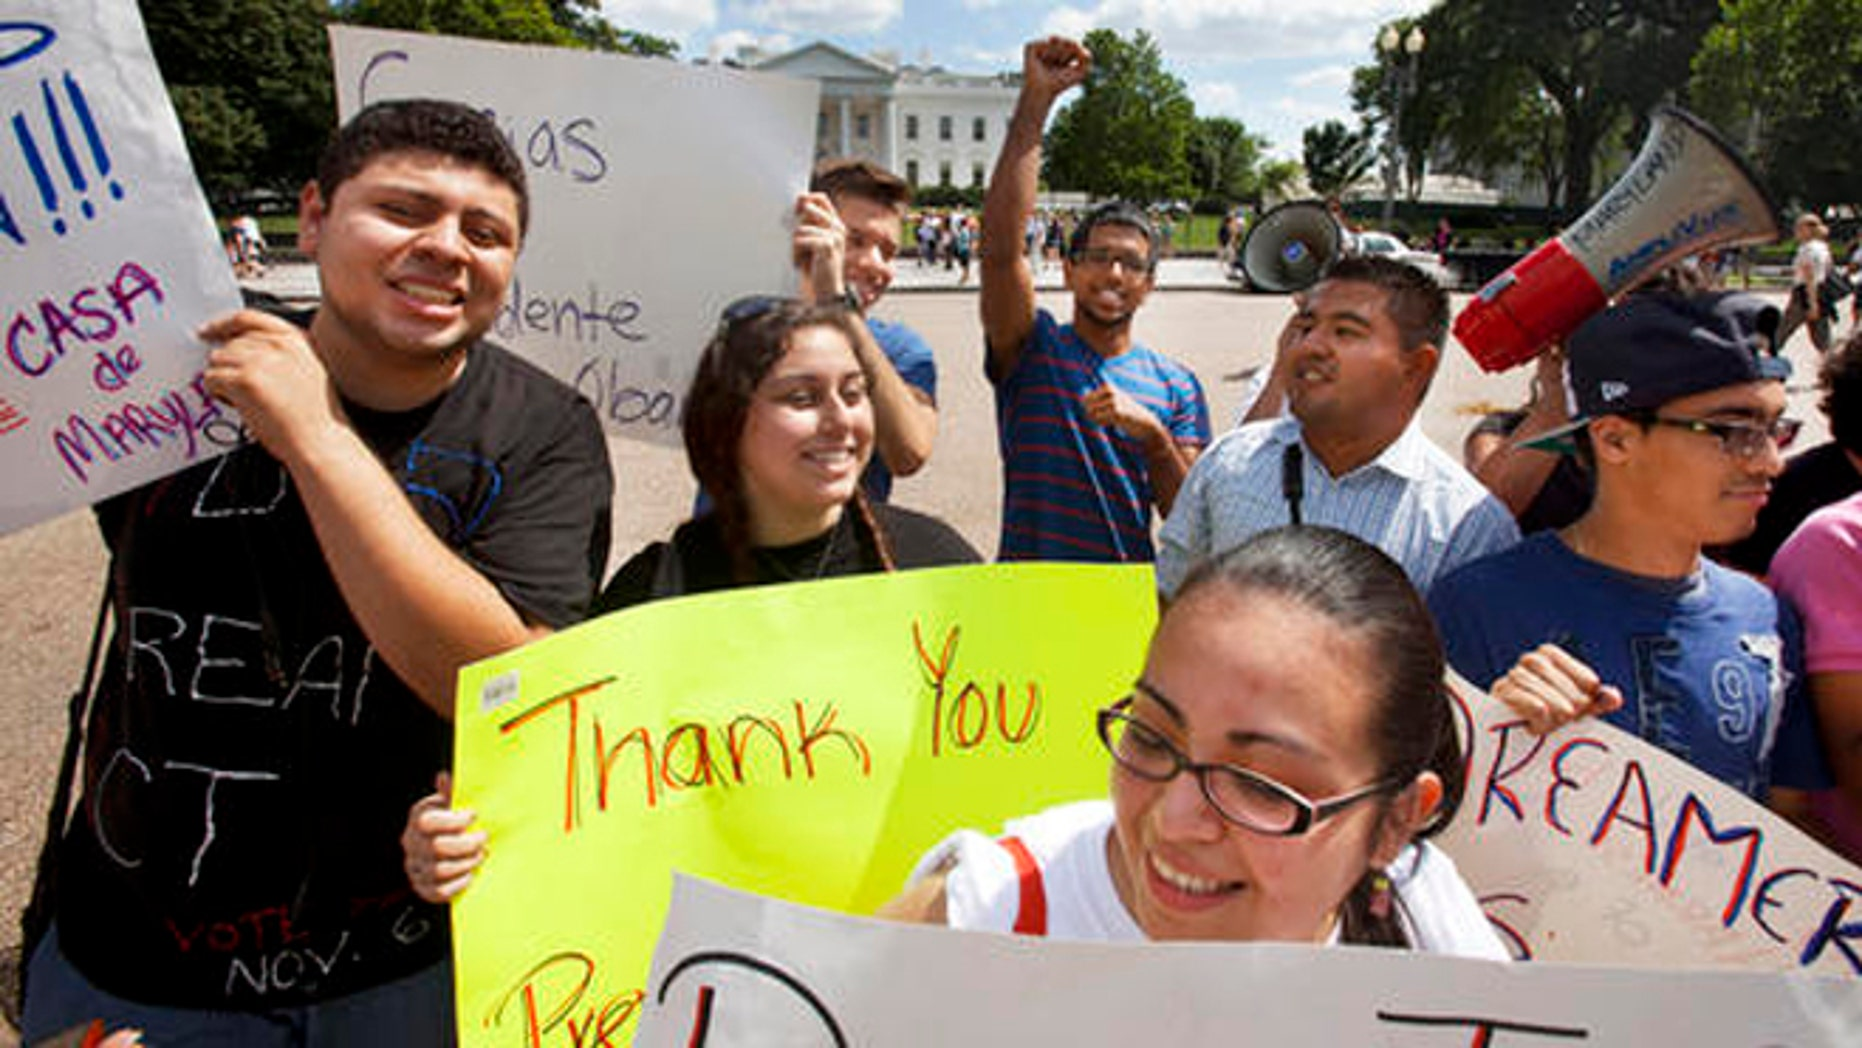 FILE - In this June 15, 2012 file photo, young demonstrators participate in a rally in support of President Barack Obama after the president announced that the U.S. government will stop deporting and begin granting work permits to younger illegal immigrants who came to the U.S. as children and have since led law-abiding lives. Young Hispanic and Asian-Americans who are immigrants themselves or have a parent who is are more likely to be liberal in their views on politics and immigration than those with families who have been in United States longer, a new GenForward poll shows. (AP Photo/Jacquelyn Martin, File)